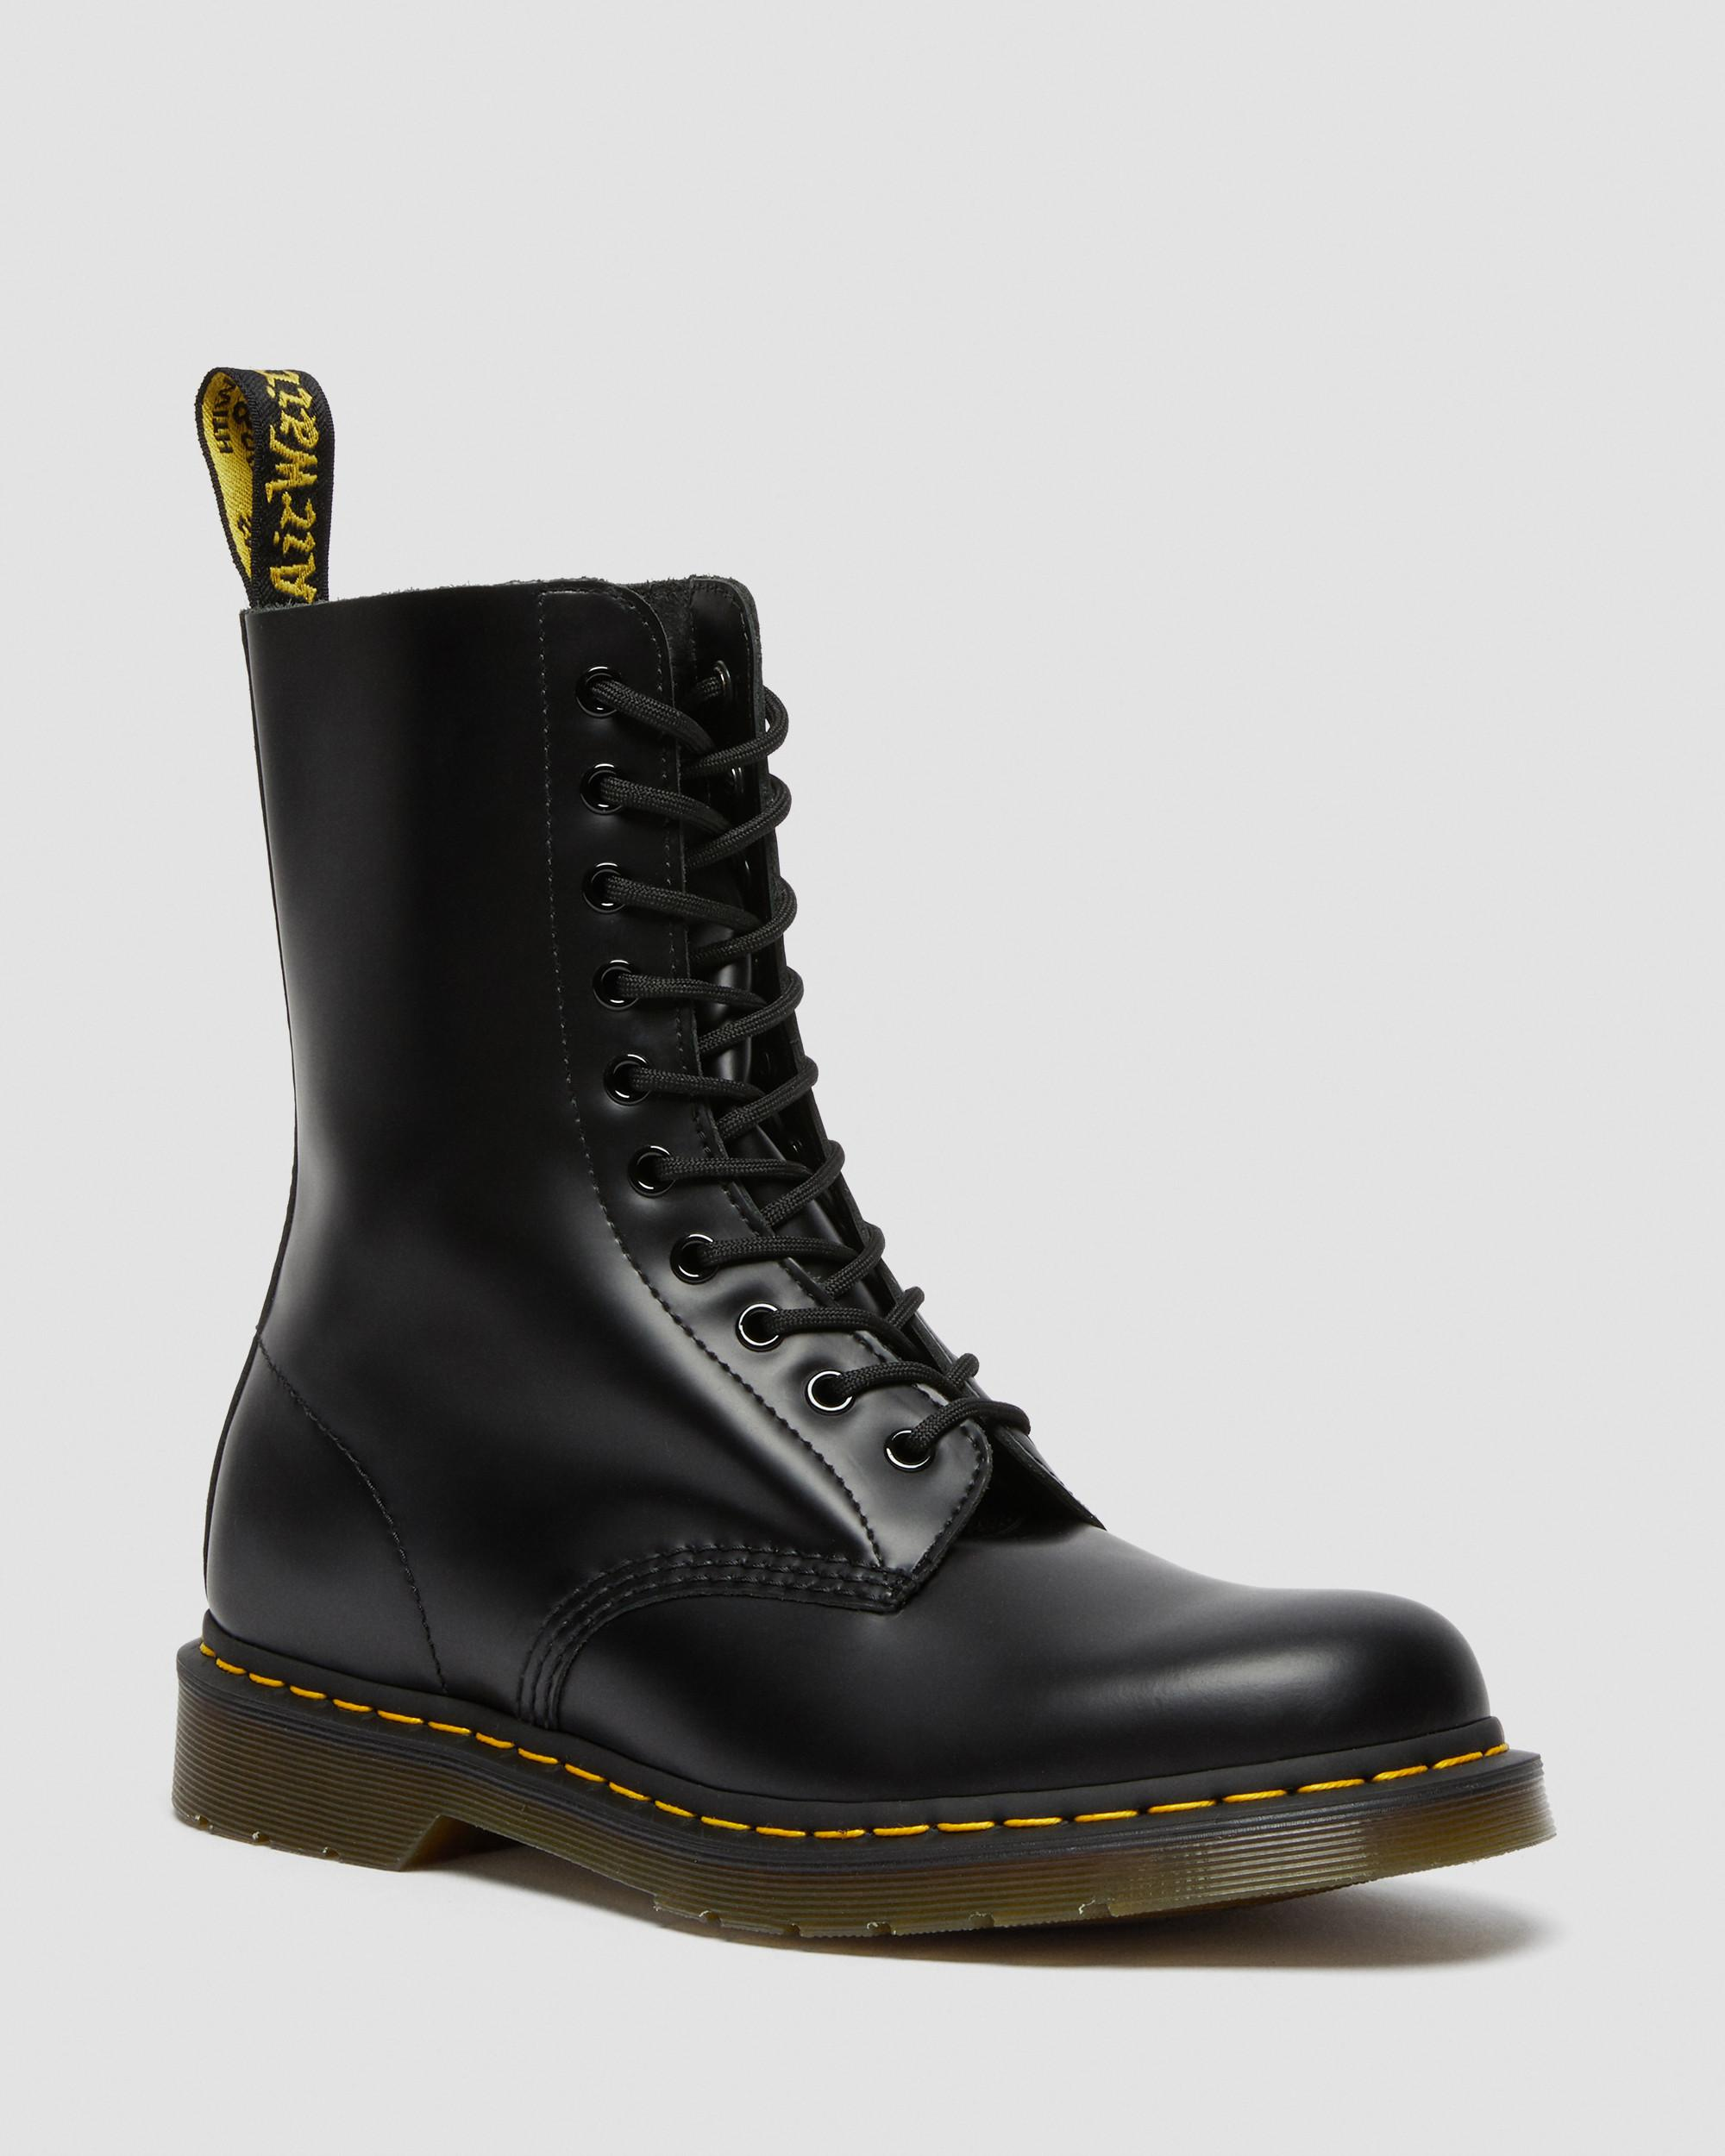 DR MARTENS 1490 SMOOTH